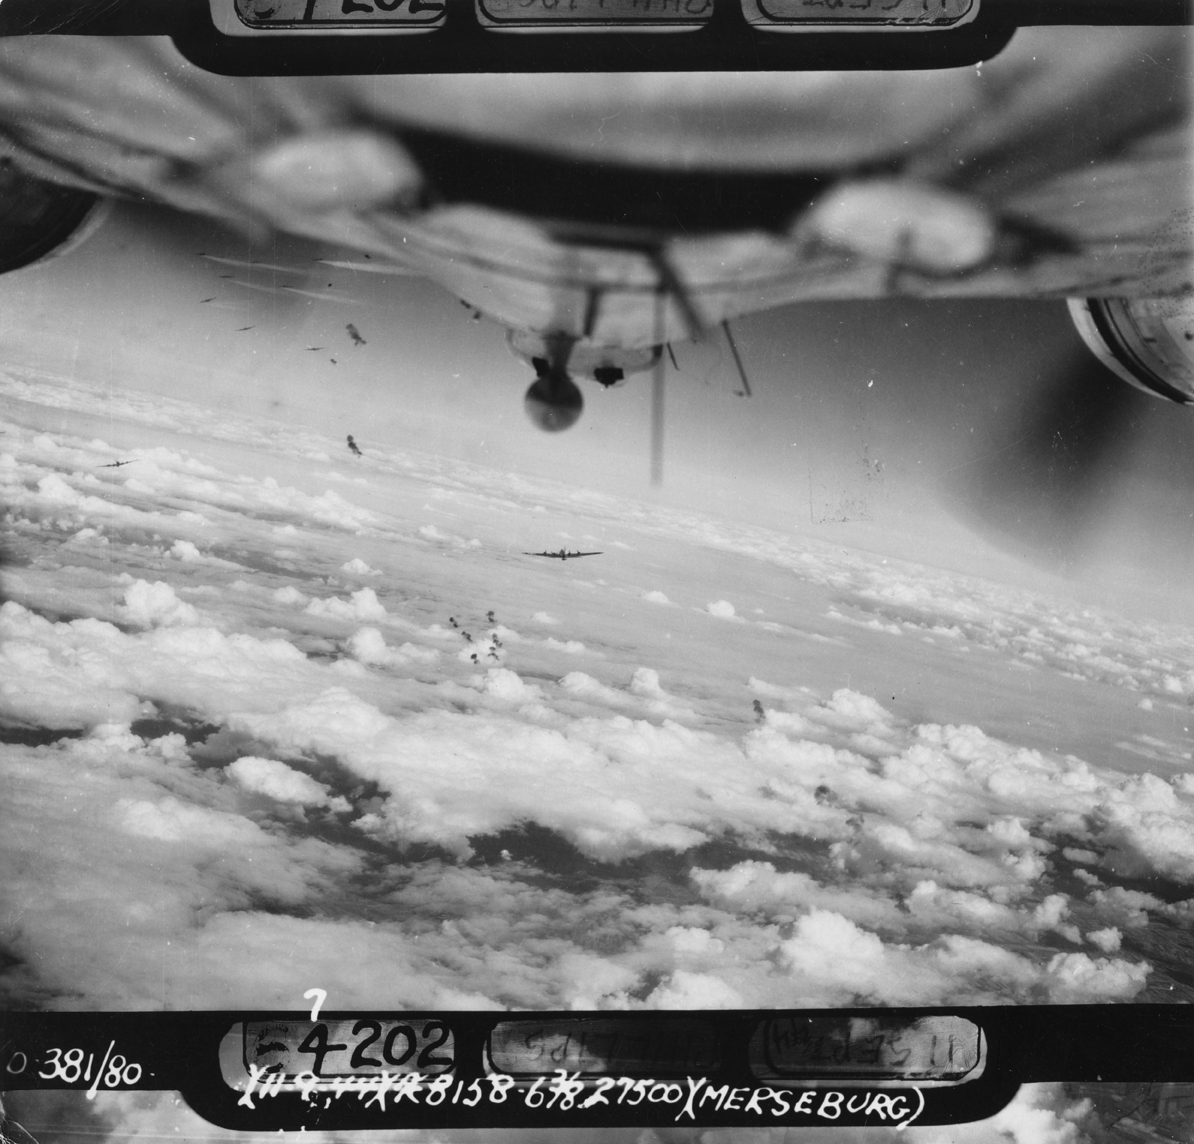 B-17 Flying Fortresses of the 381st Bomb Group fly through flak during a mission over Merseburg. Photographed from a B-17. Even if this is not related to Walter E. Poulsen, his view from the ball turret must have been similar. (© IWM, FRE 4857)